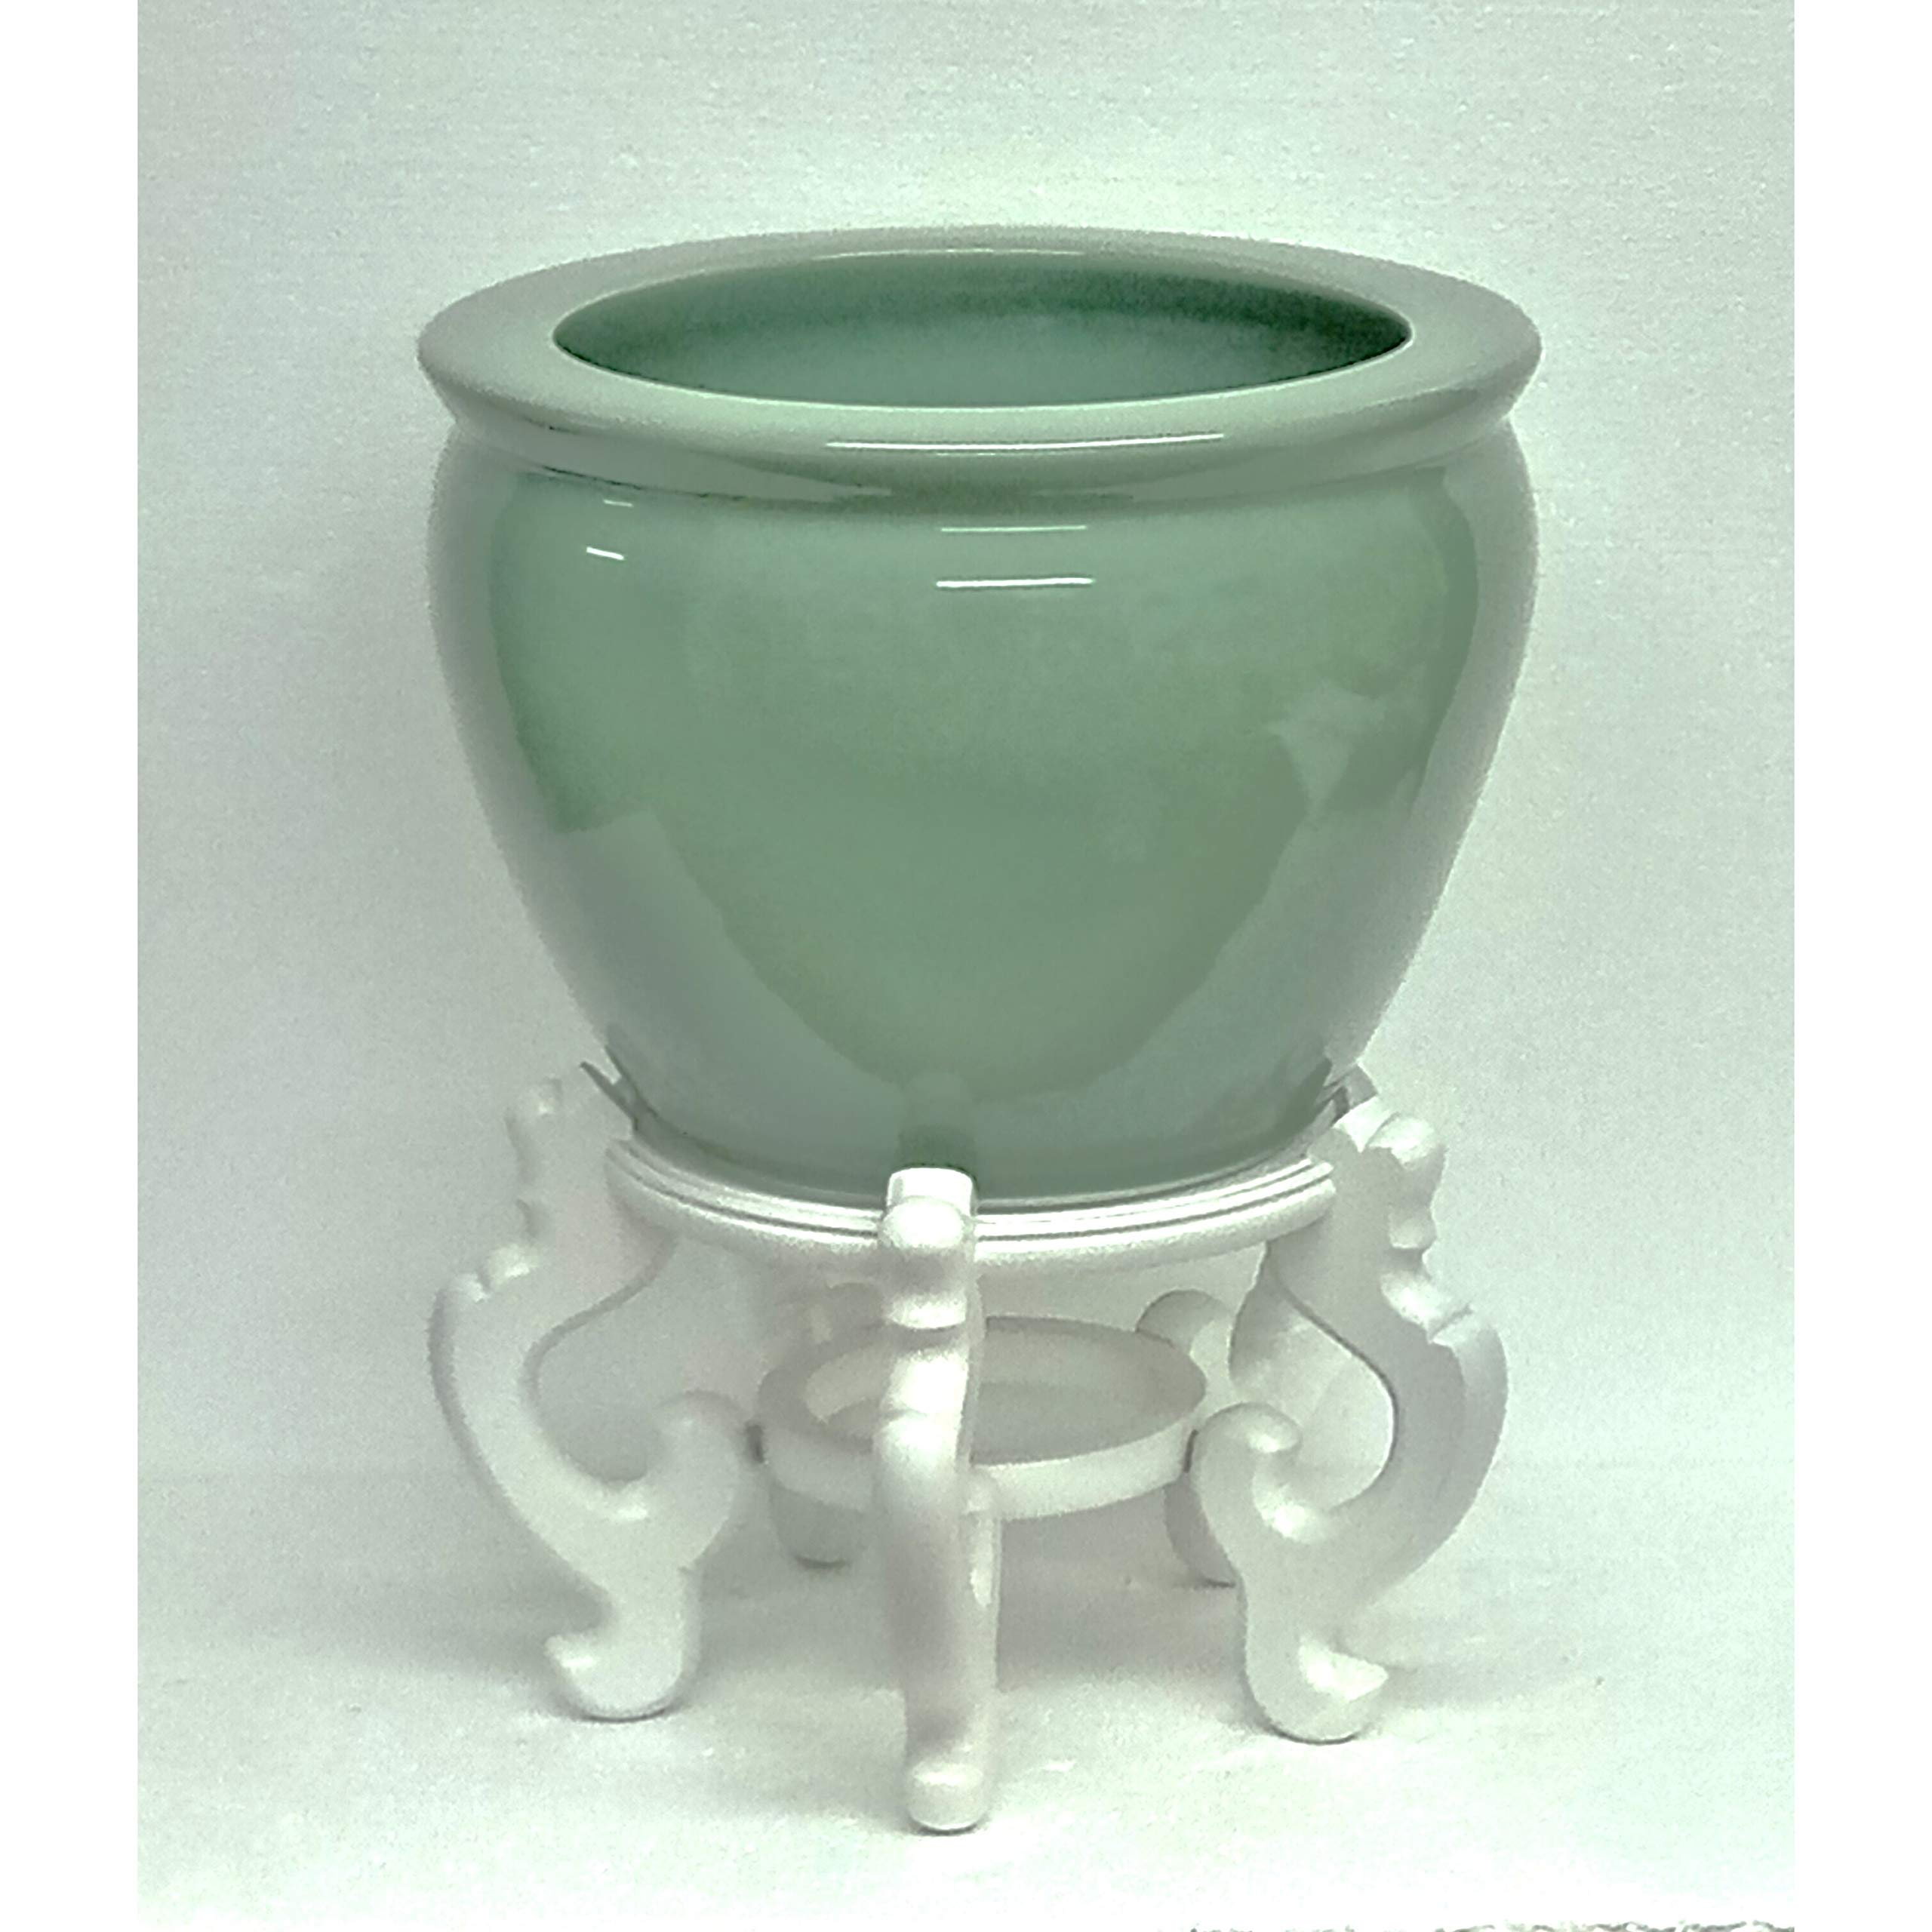 Solid Celadon Porcelain Fishbowl W/Stand Green by Unknown